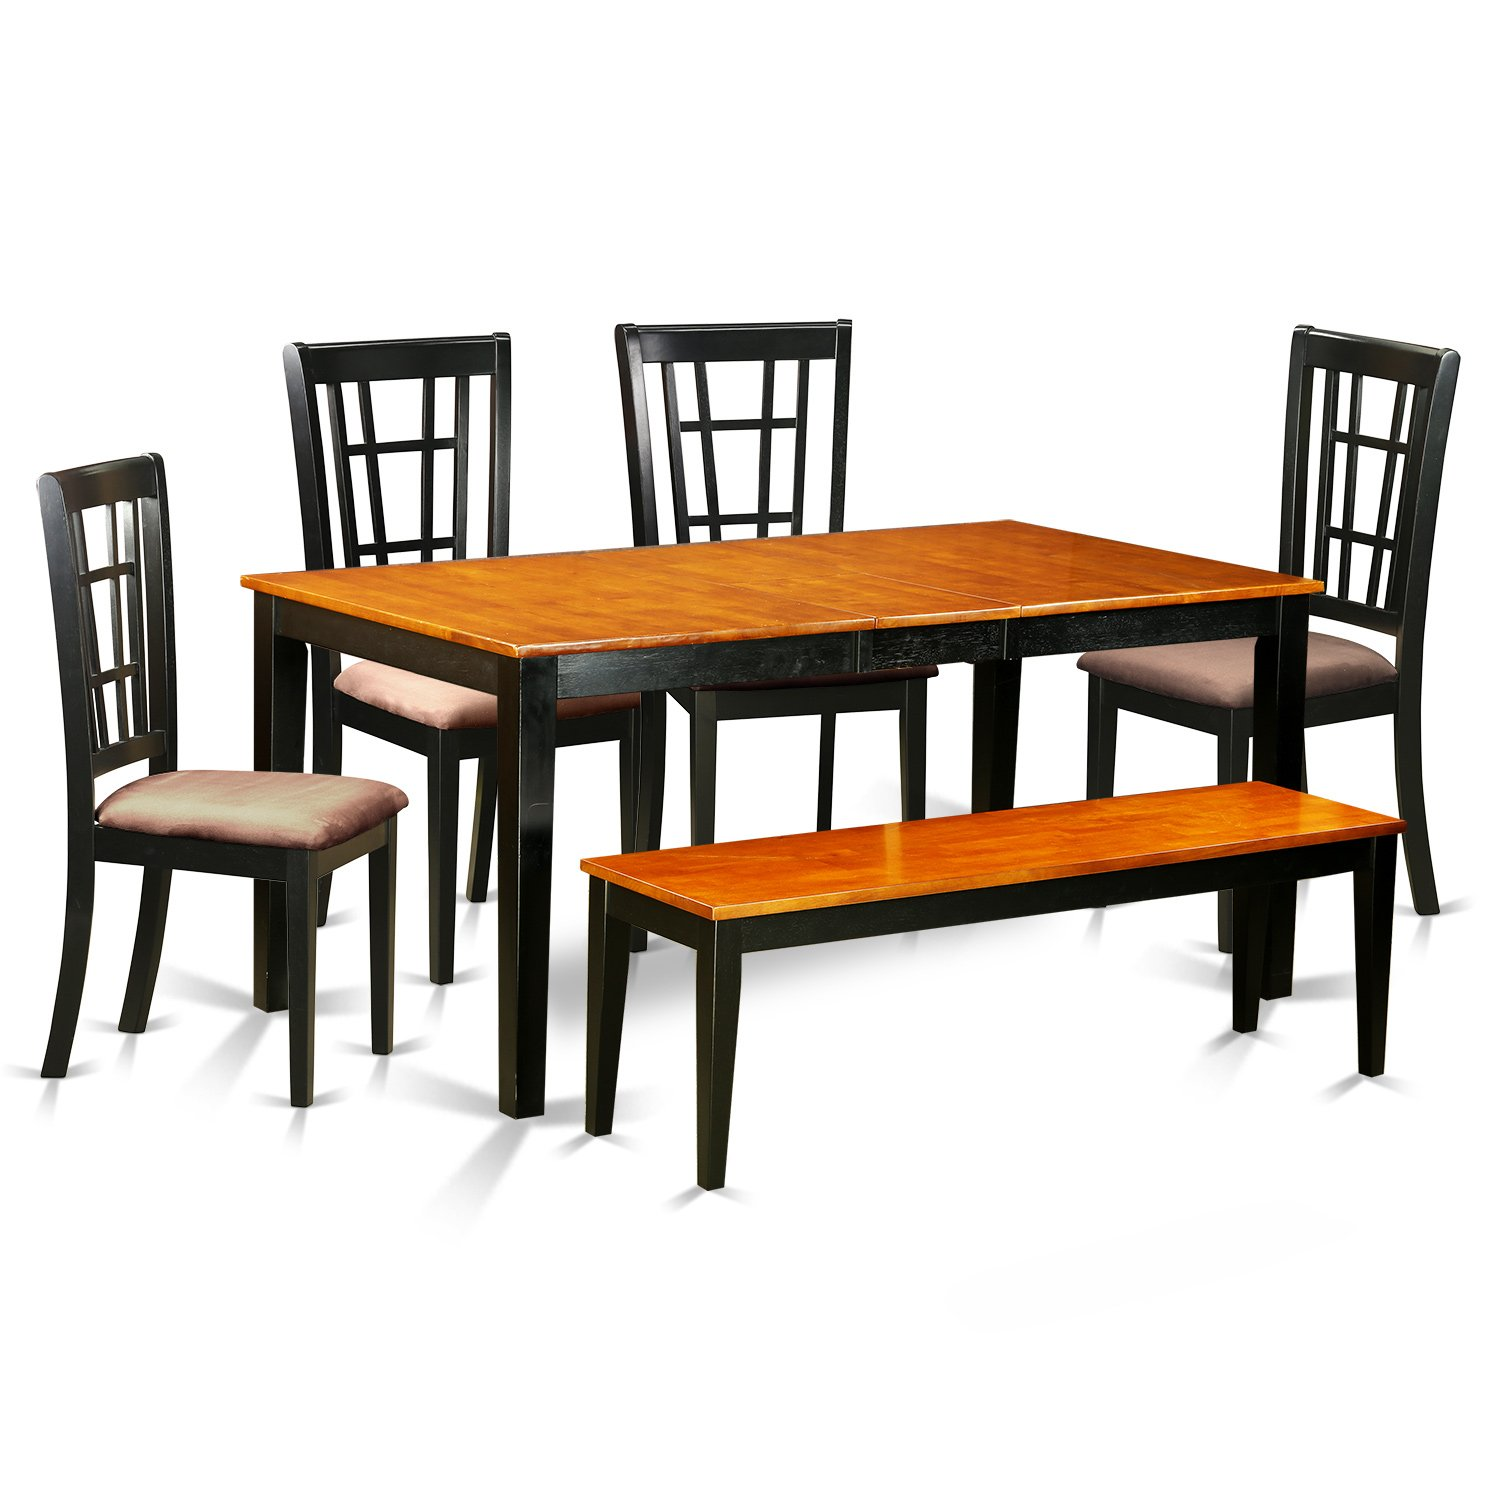 Amazon com east west furniture nico6 blk c 6 piece black dining table and 4 chairs plus one bench set kitchen dining